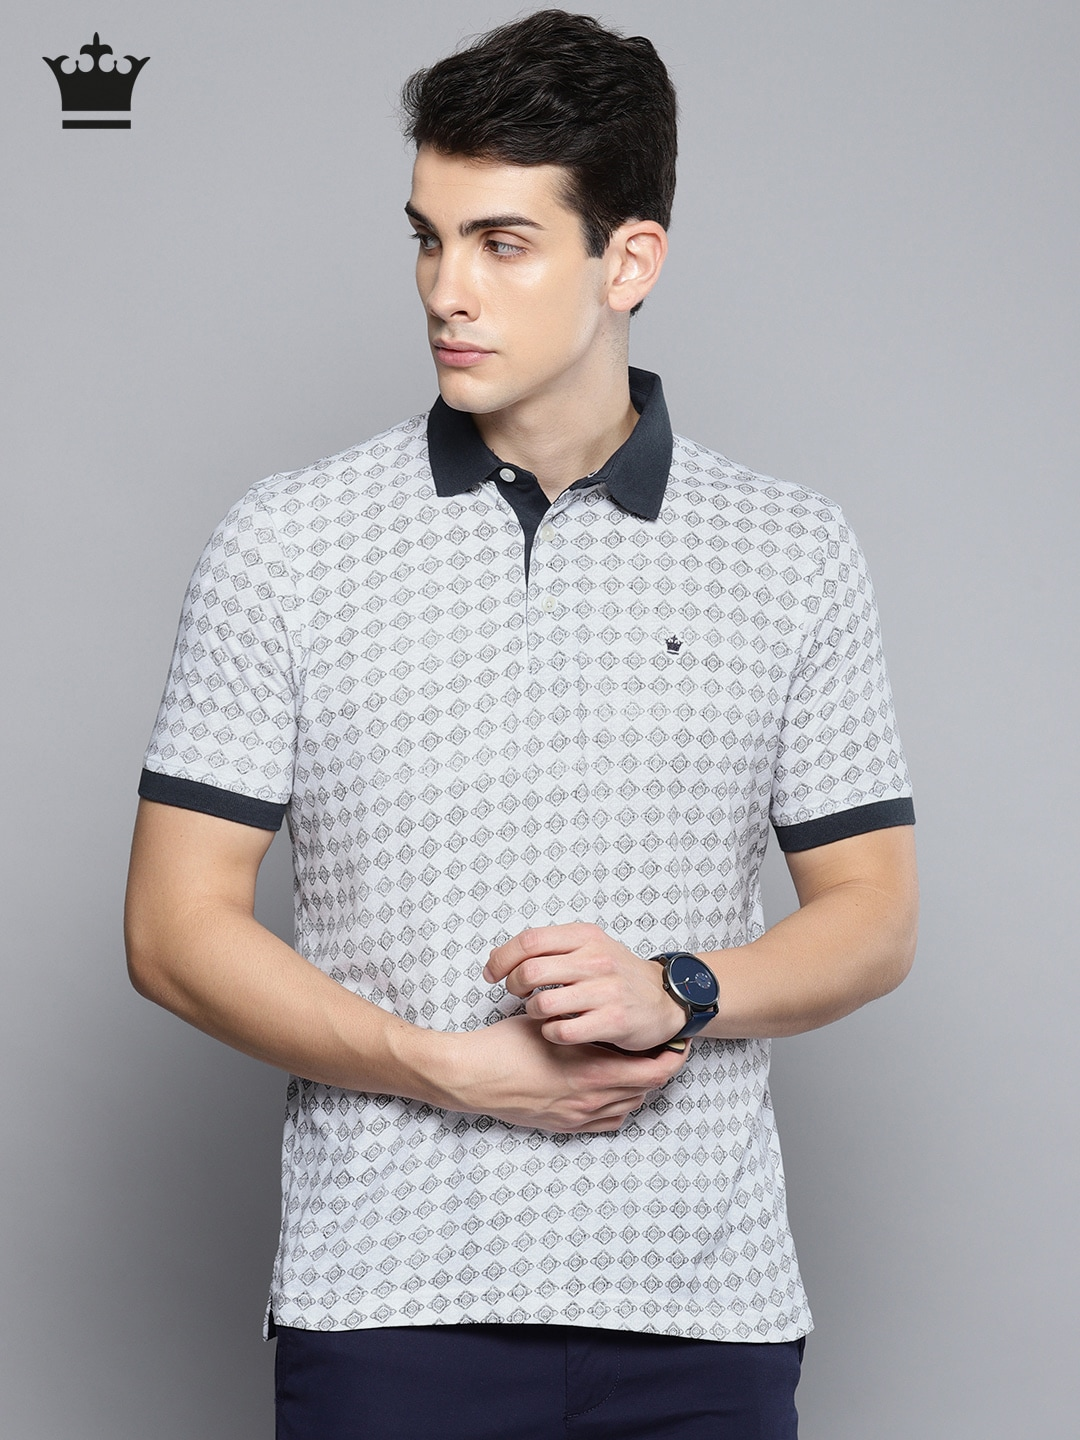 e2be89db90 Louis Philippe Tshirts - Buy Louis Philippe Tshirts online in India